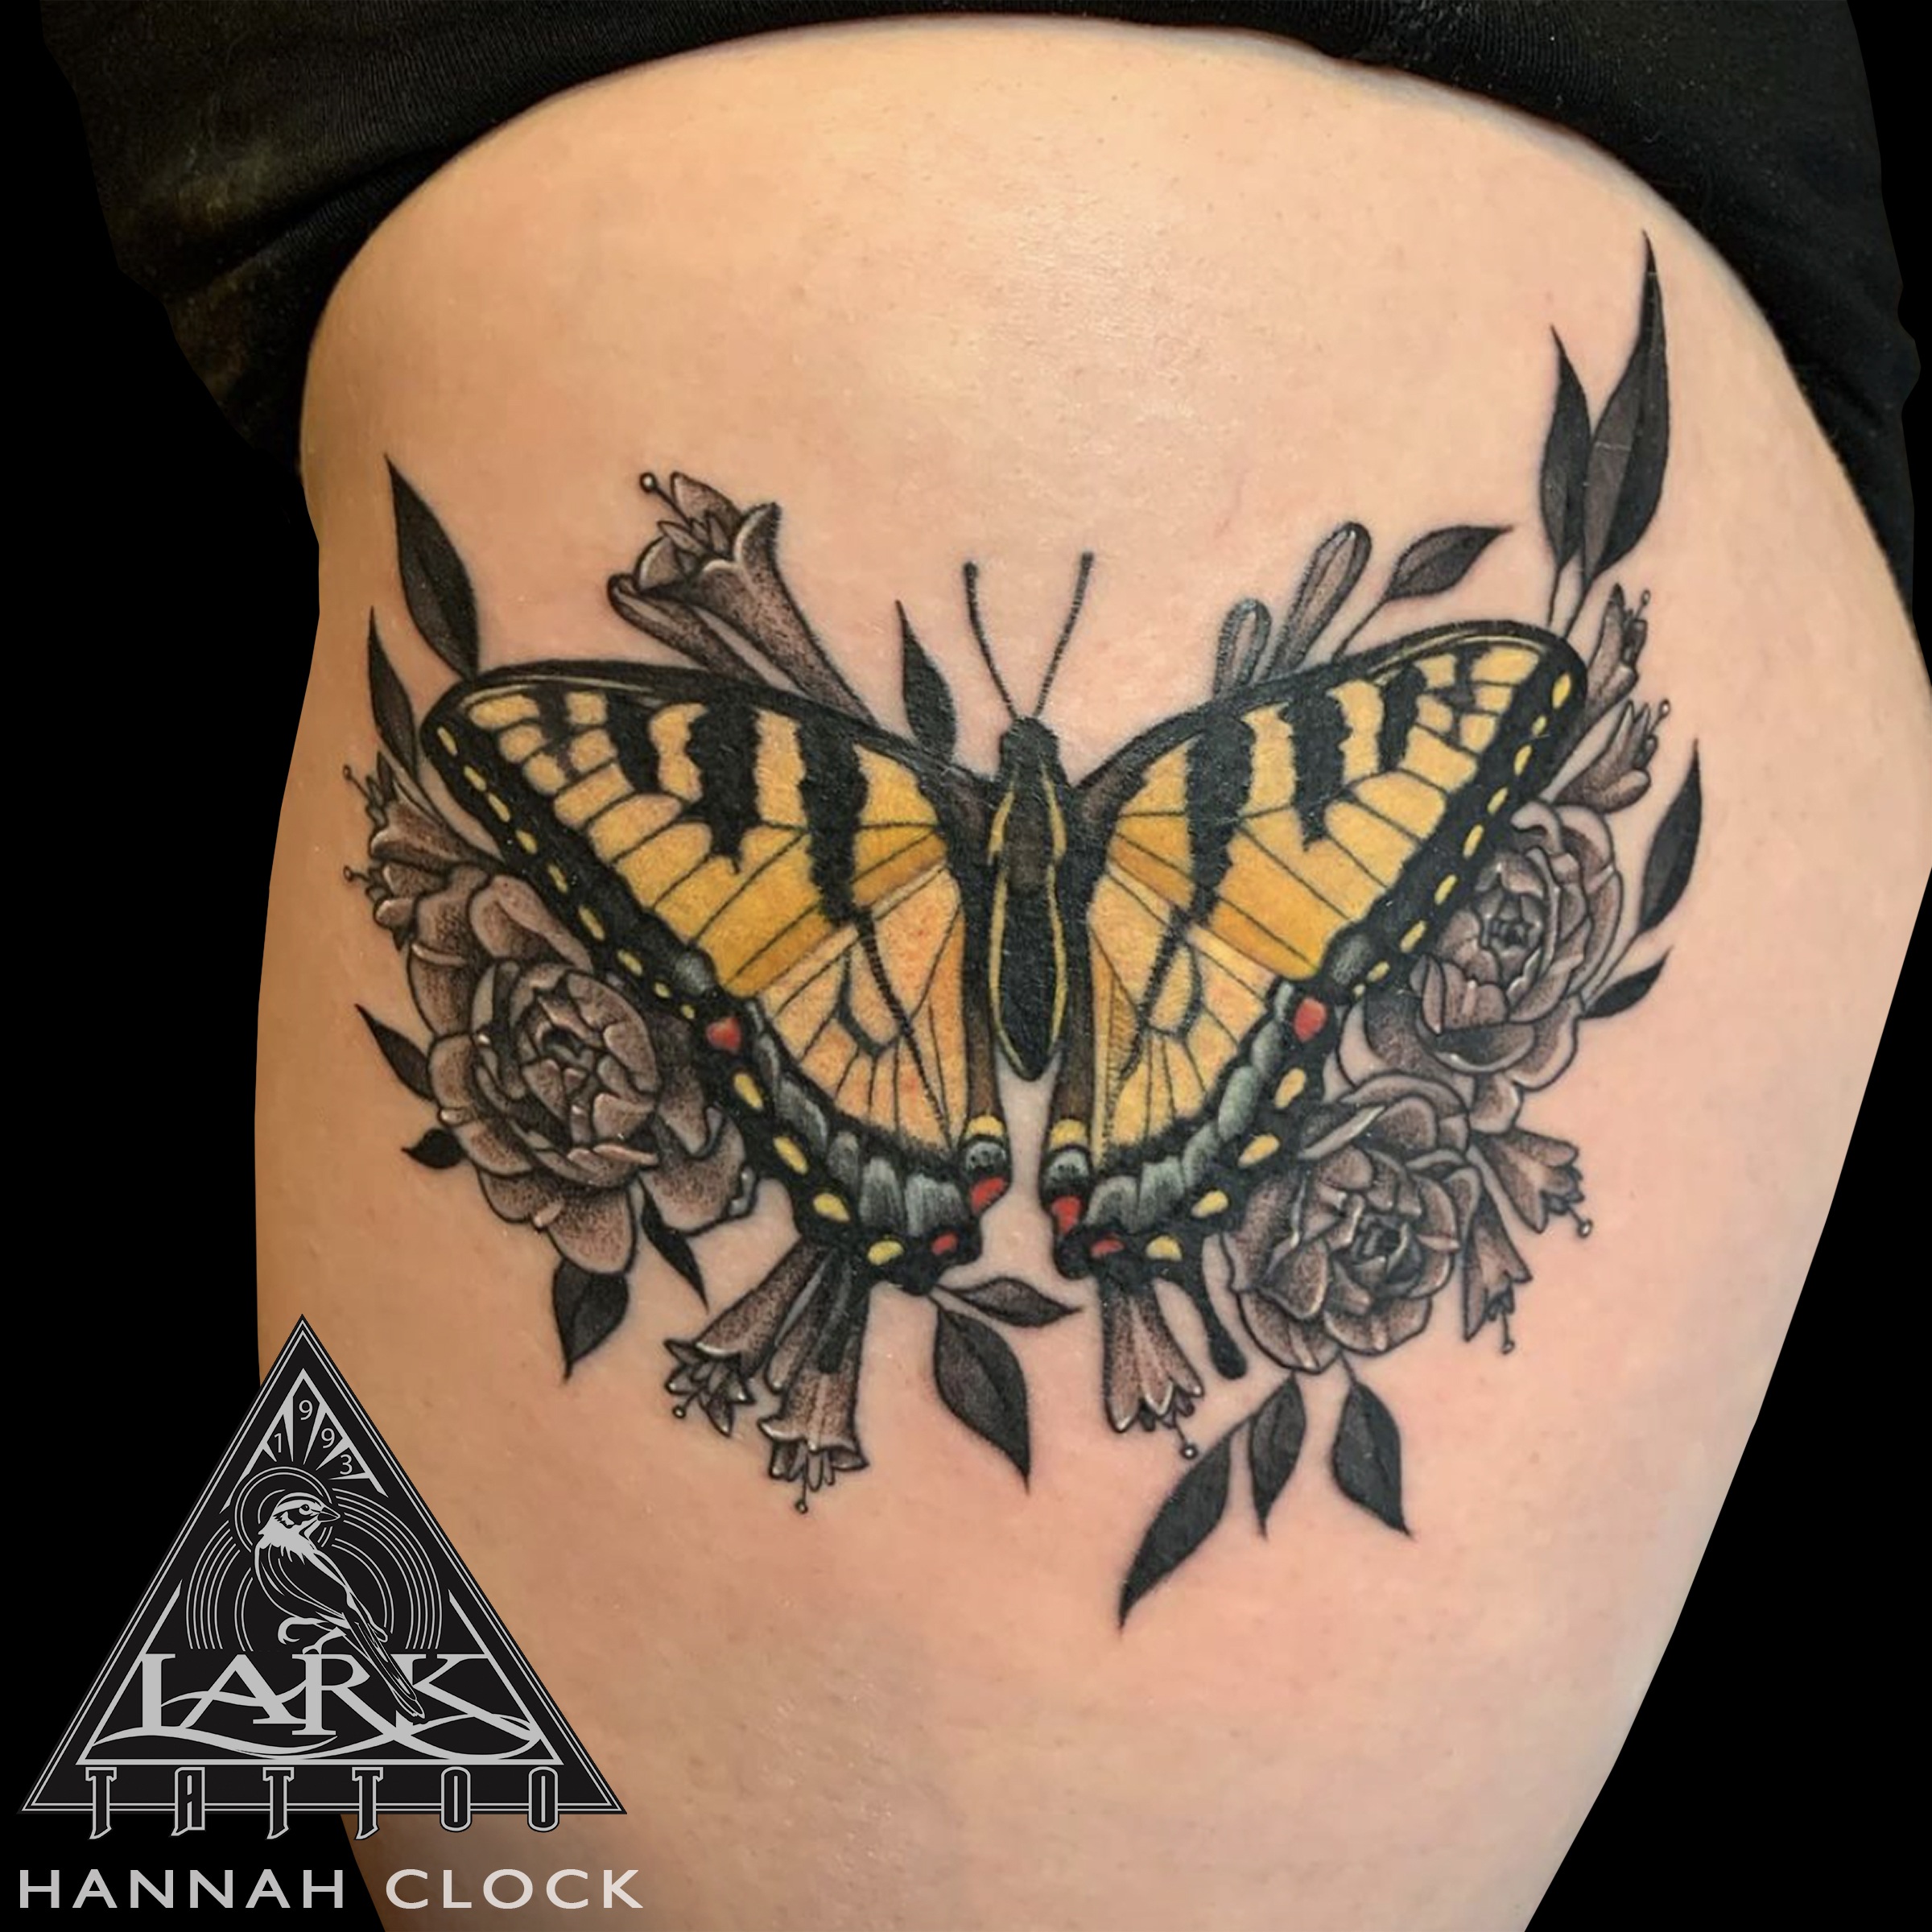 LarkTattoo, HannahClock, HannahClockLarkTattoo, Tattoo, Tattoos, Butterfly, ButterflyTattoo, YellowButterfly, YellowButterflyTattoo, TigerSwallowtail, TigerSwallowtailTattoo, TigerSwallowtailButterfly, TigerSwallowtailButterflyTattoo, SwallowtailButterfly, SwallowtailButterflyTattoo, PapilioGlaucus, PapilioGlaucusTattoo, Rose, RoseTattoo, Roses, RosesTattoo, ColorTattoo, FemaleArtist, FemaleTattooArtist, FemaleTattooer, LadyTattooer, BeutifulTattoo, LongIslandTattooArtist, LongIslandTattooer, LongIslandTattoo, TattooArtist, Tattoist, Tattooer, TattooOfTheDay, Tat, Tats, Tatts, Tatted, Inked, Ink, TattooInk, AmazingInk, AmazingTattoo, BodyArt, LarkTattooWestbury, Westbury, LongIsland, NY, NewYork, USA, Art, Tattedup, InkedUp, LarkTattoos